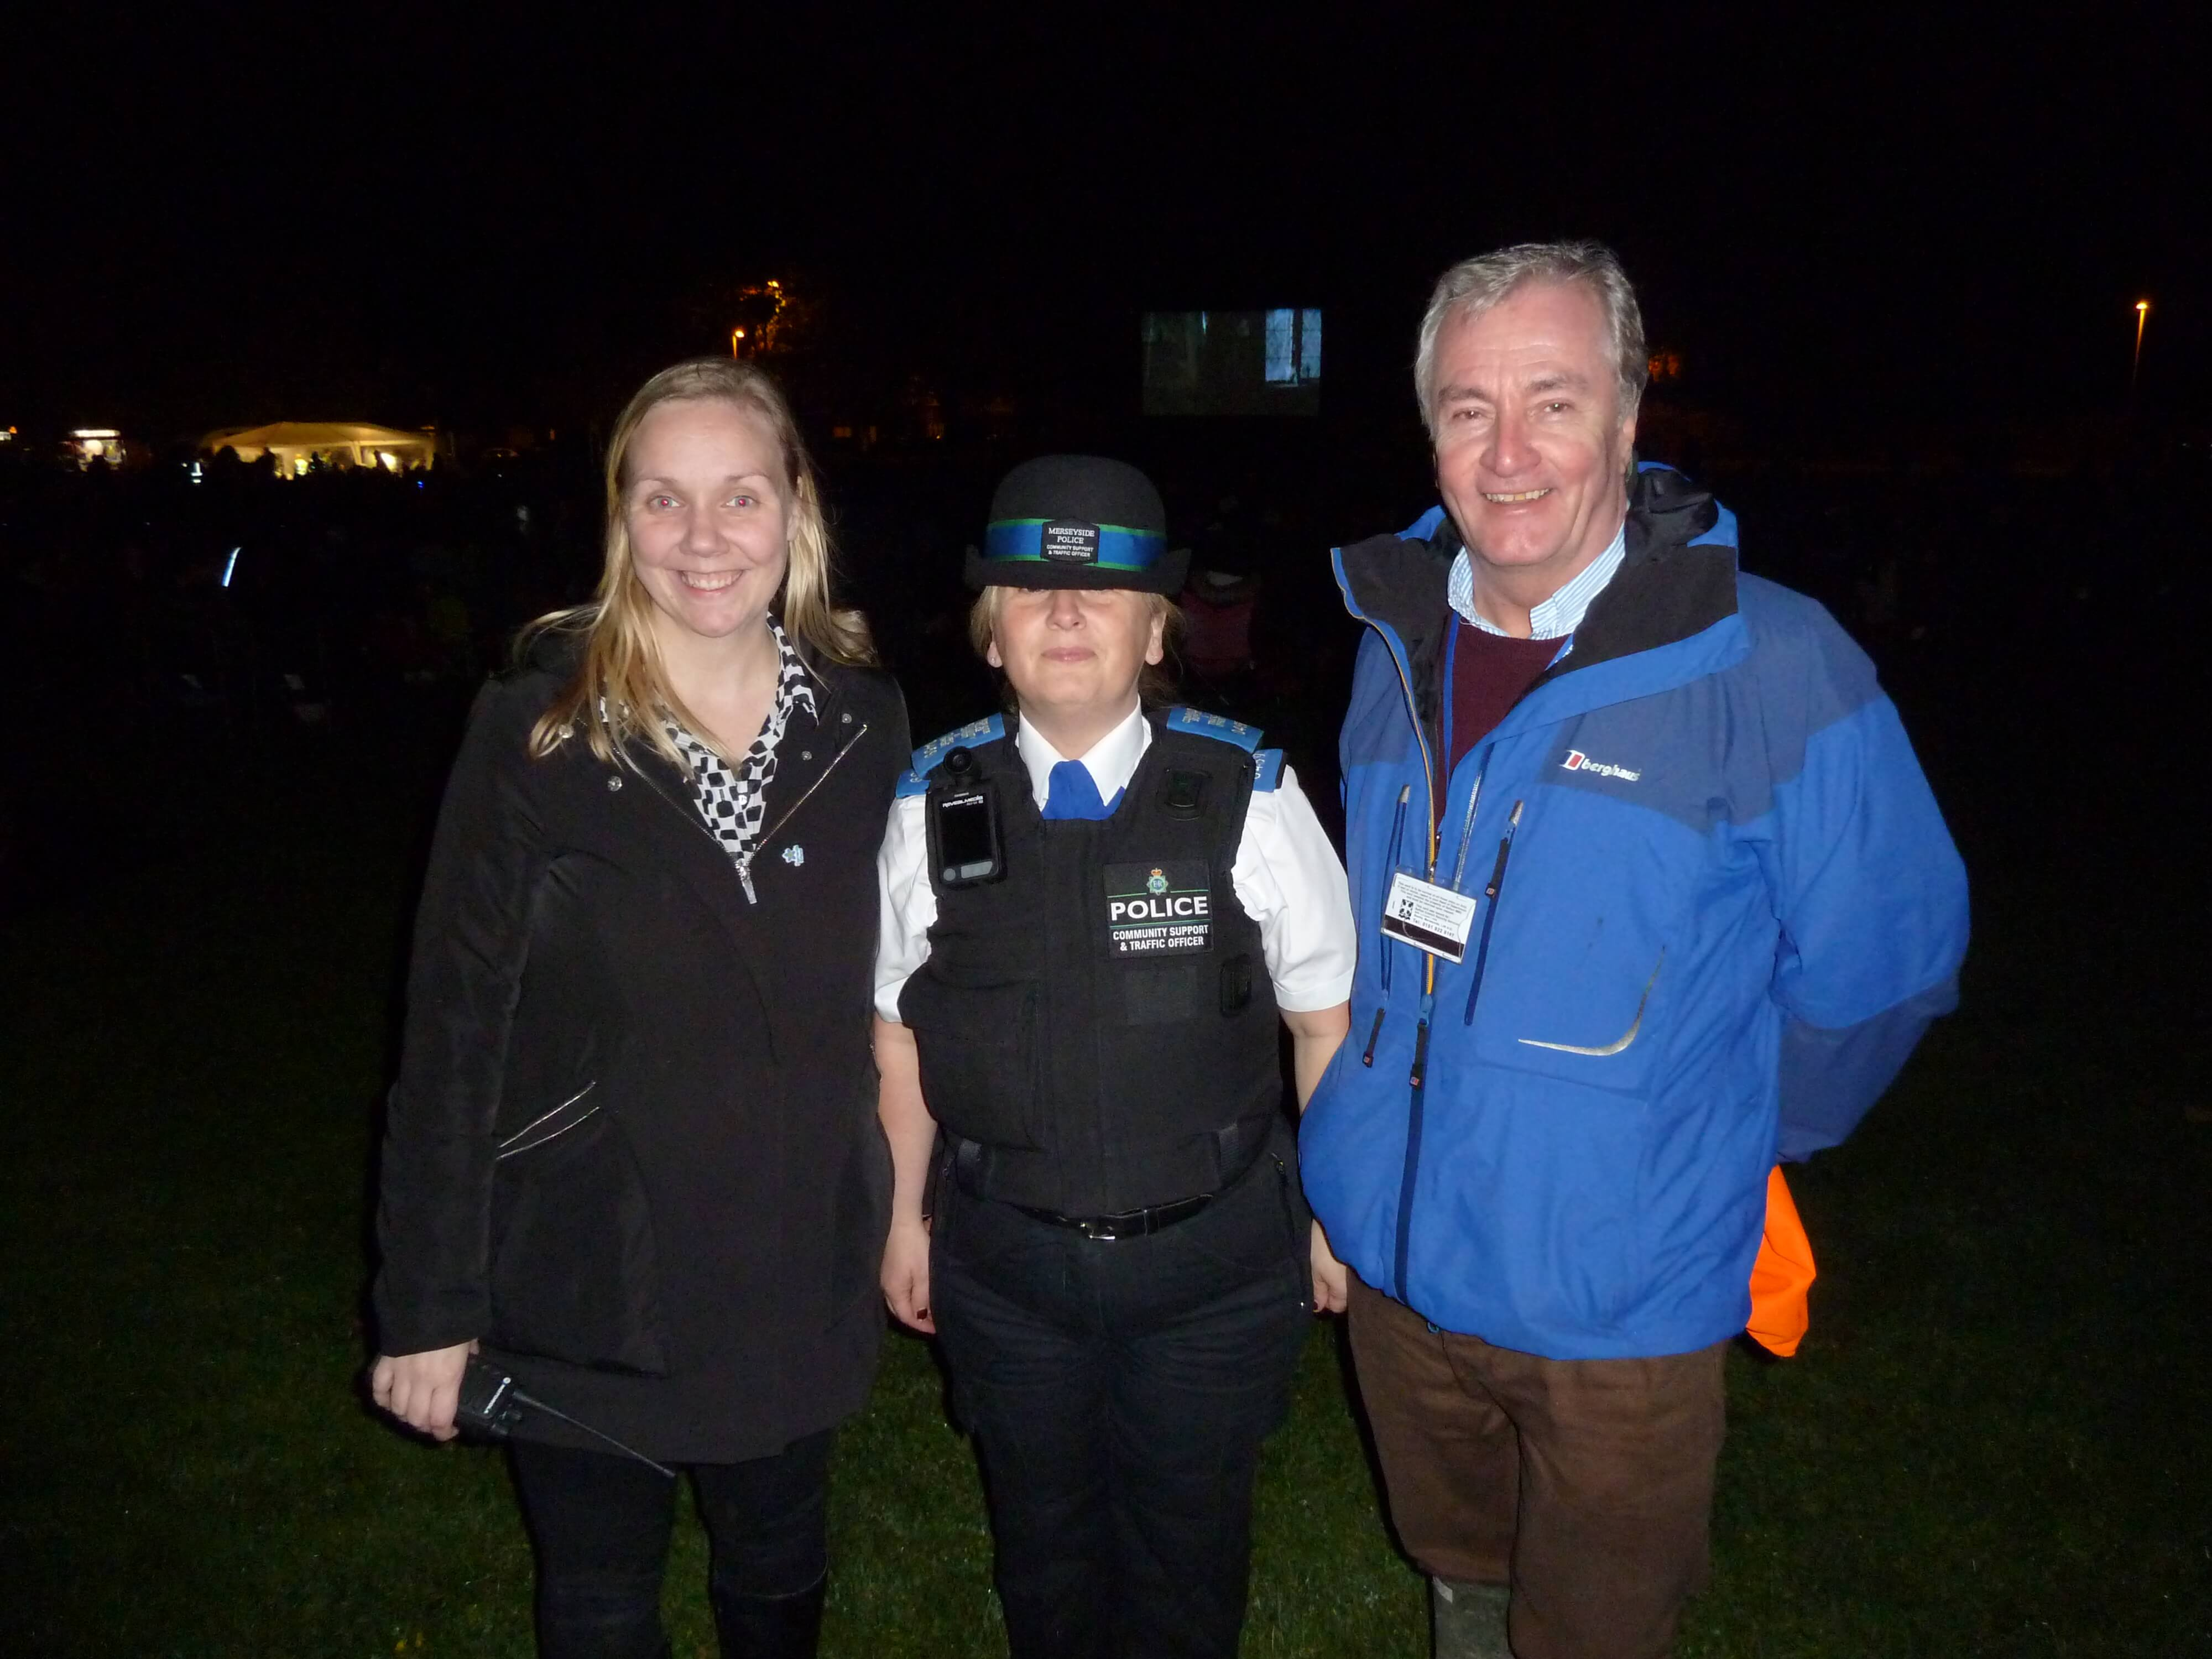 MCE's Diana Tuohy, PCSO Anne McIntyre and Cllr Patrick MCKinley